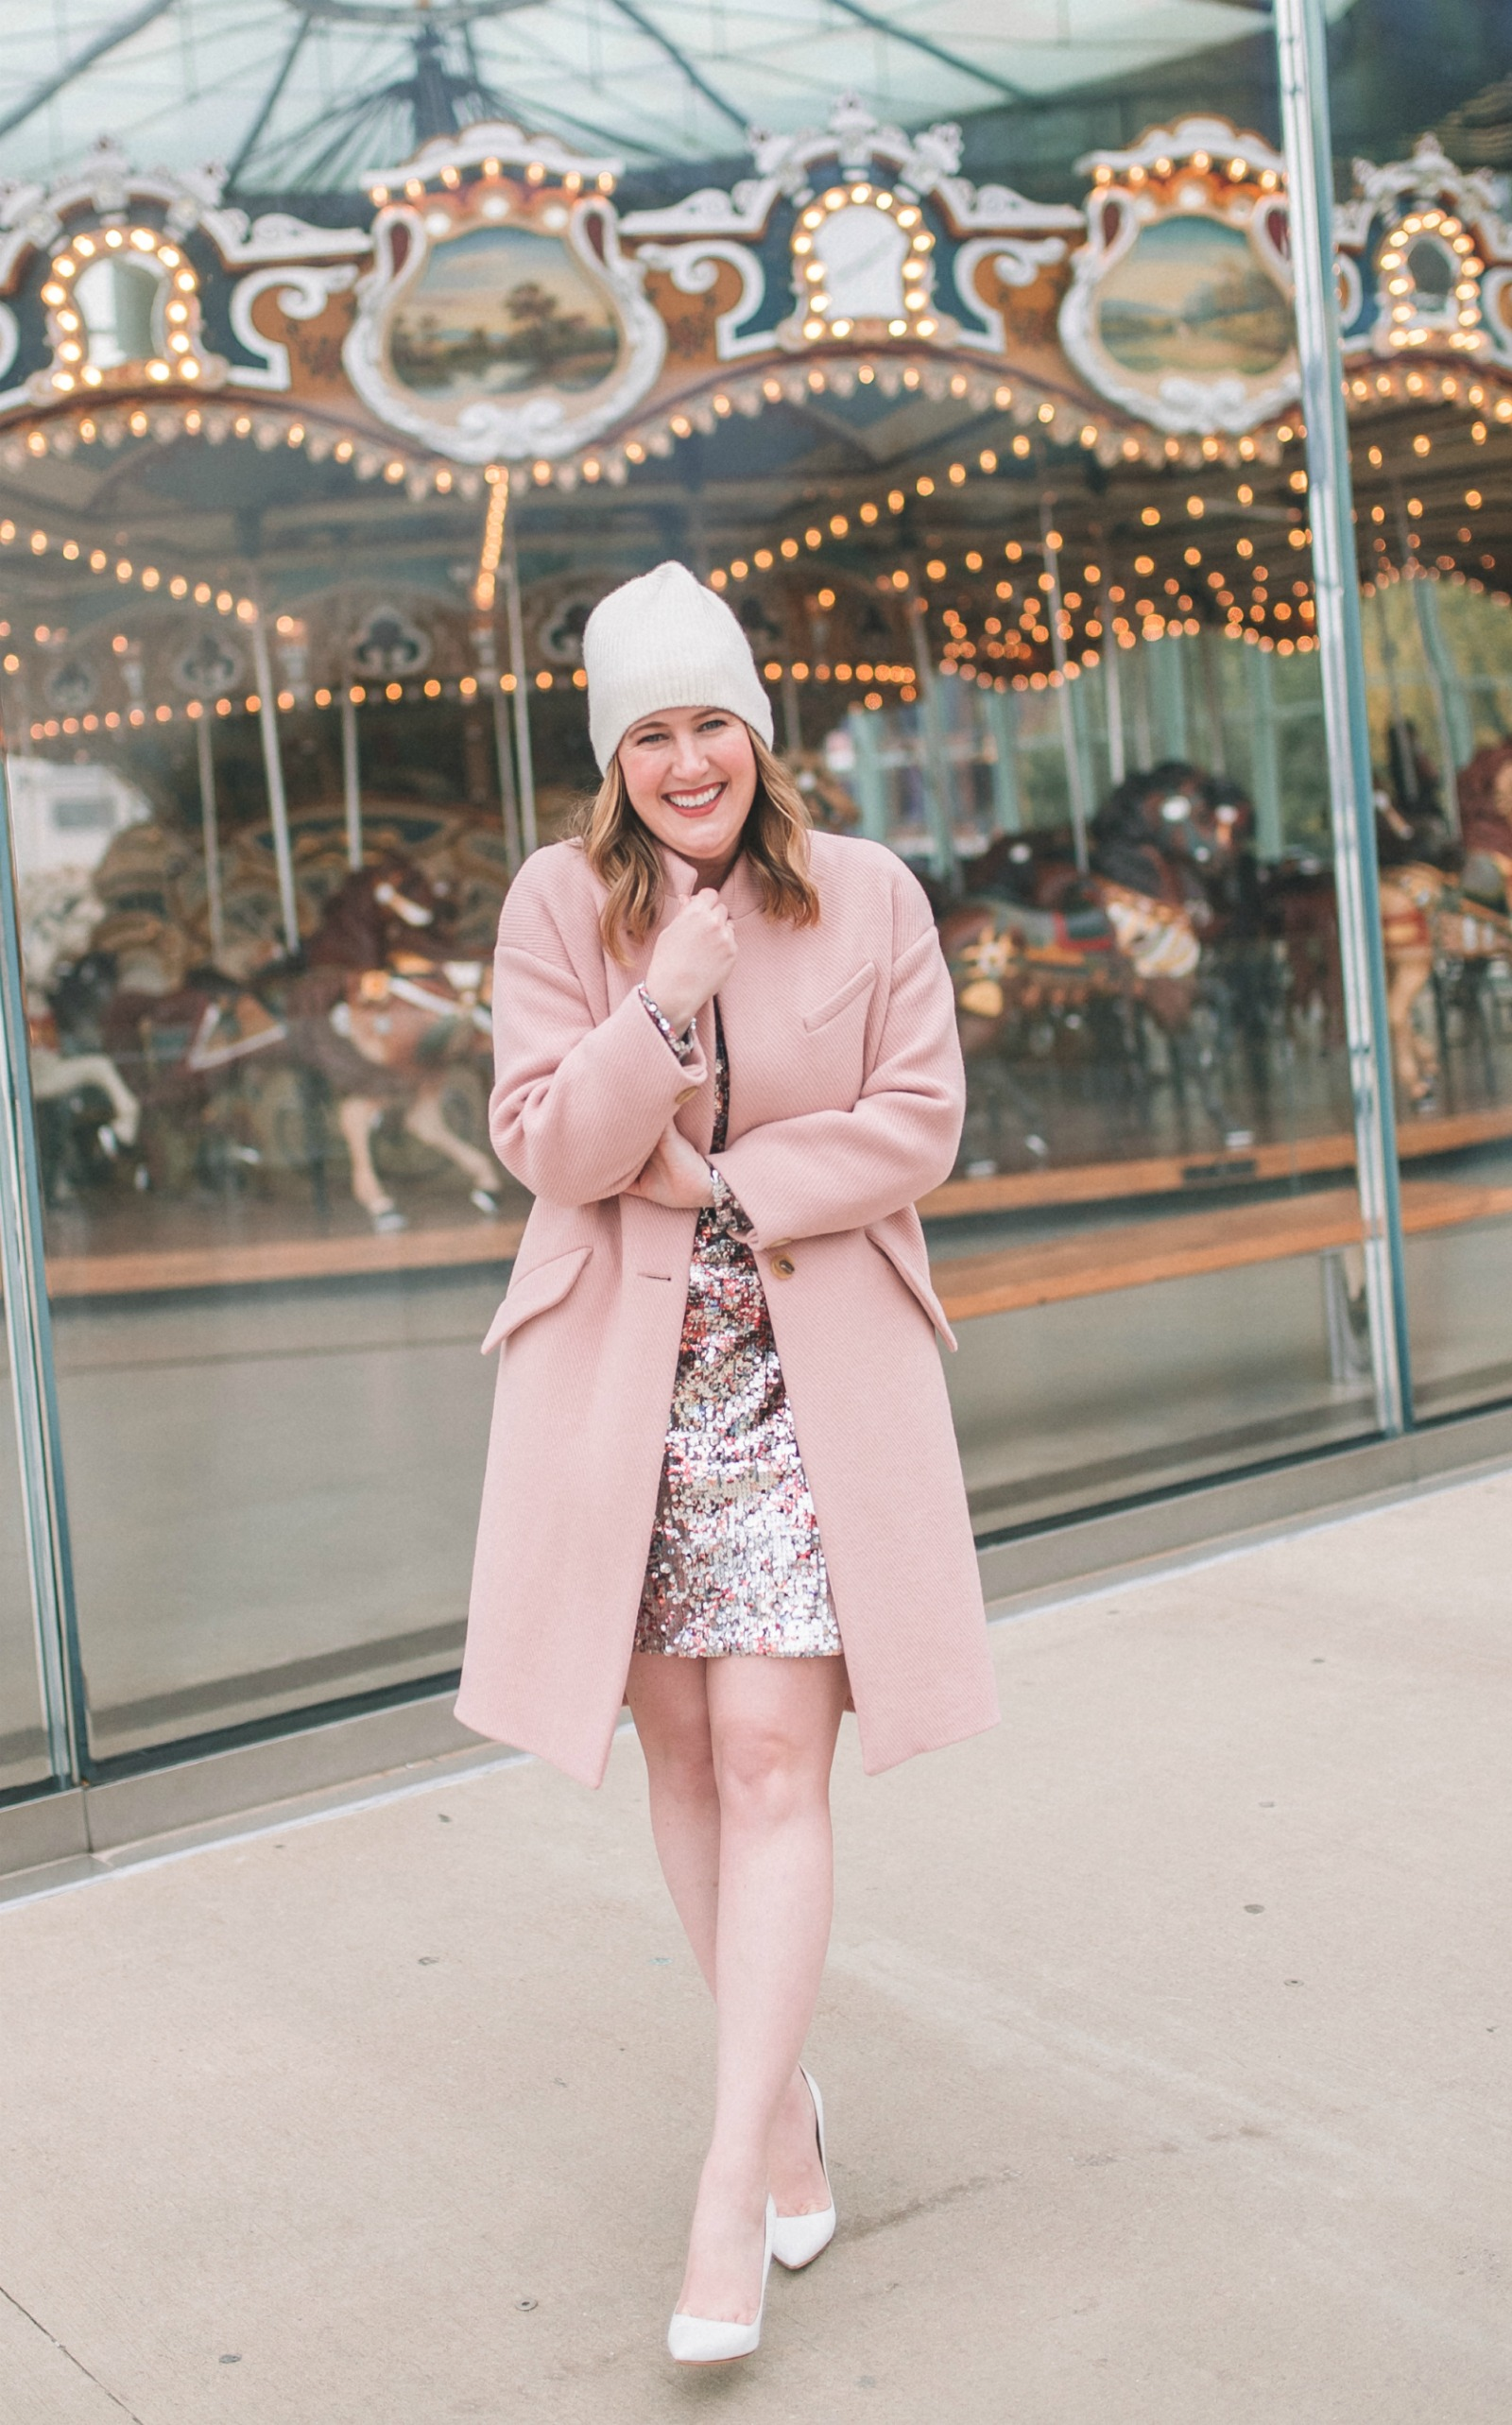 2019 NYC Holiday Bucket List I wit & whimsy